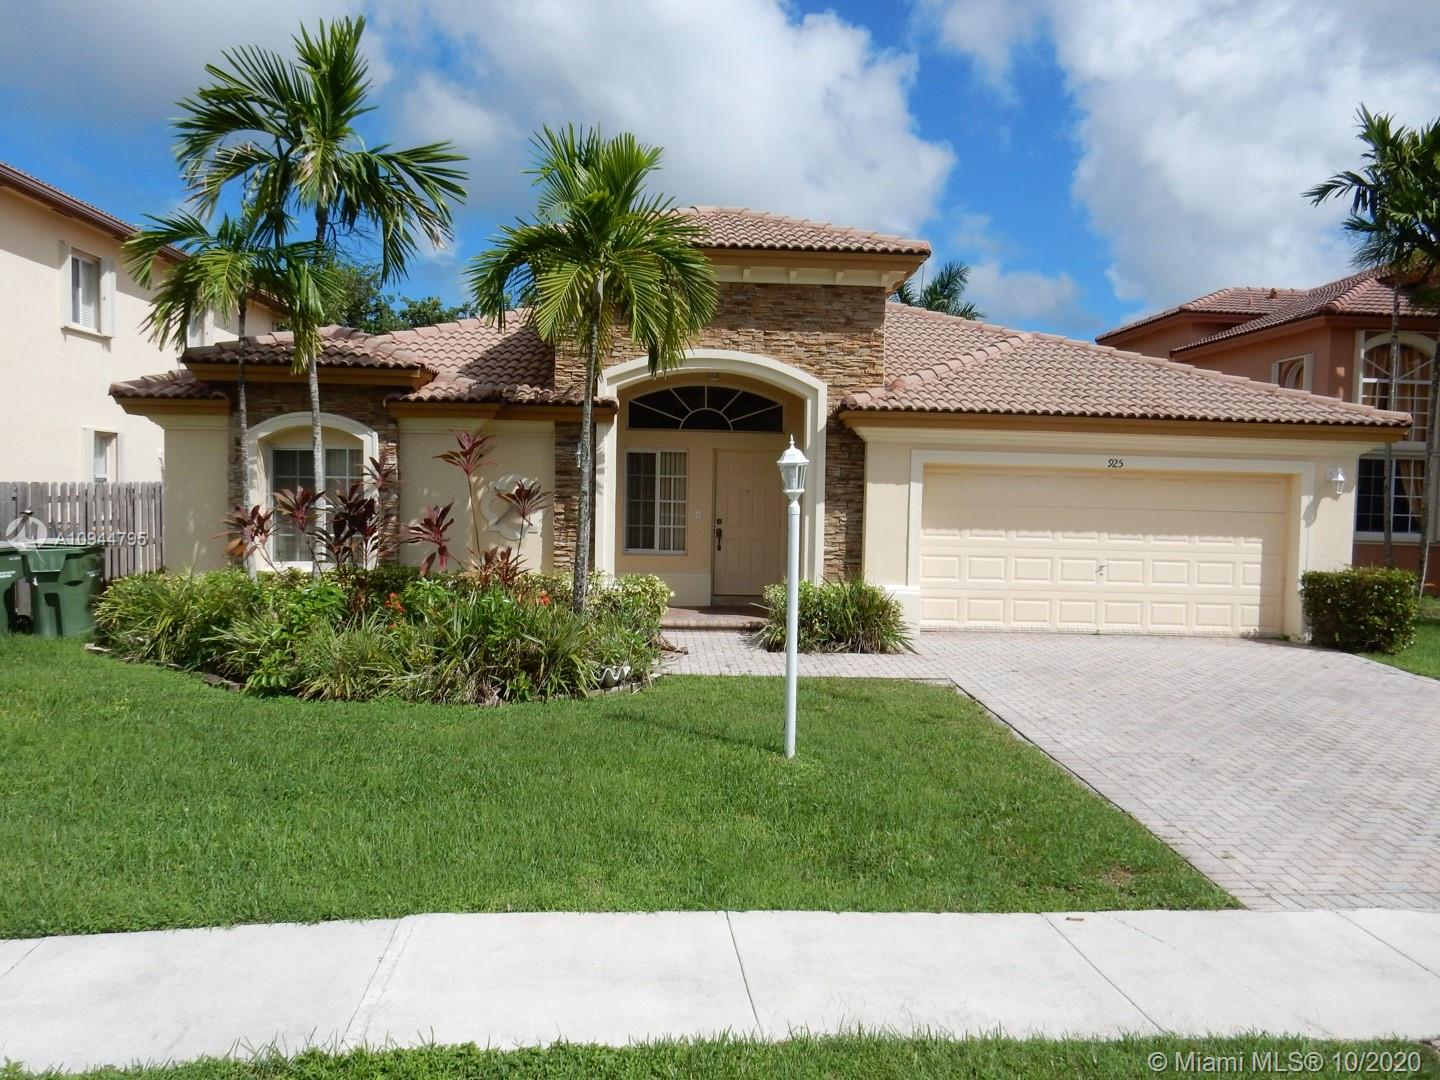 Details for 925 36th Ave, Homestead, FL 33033